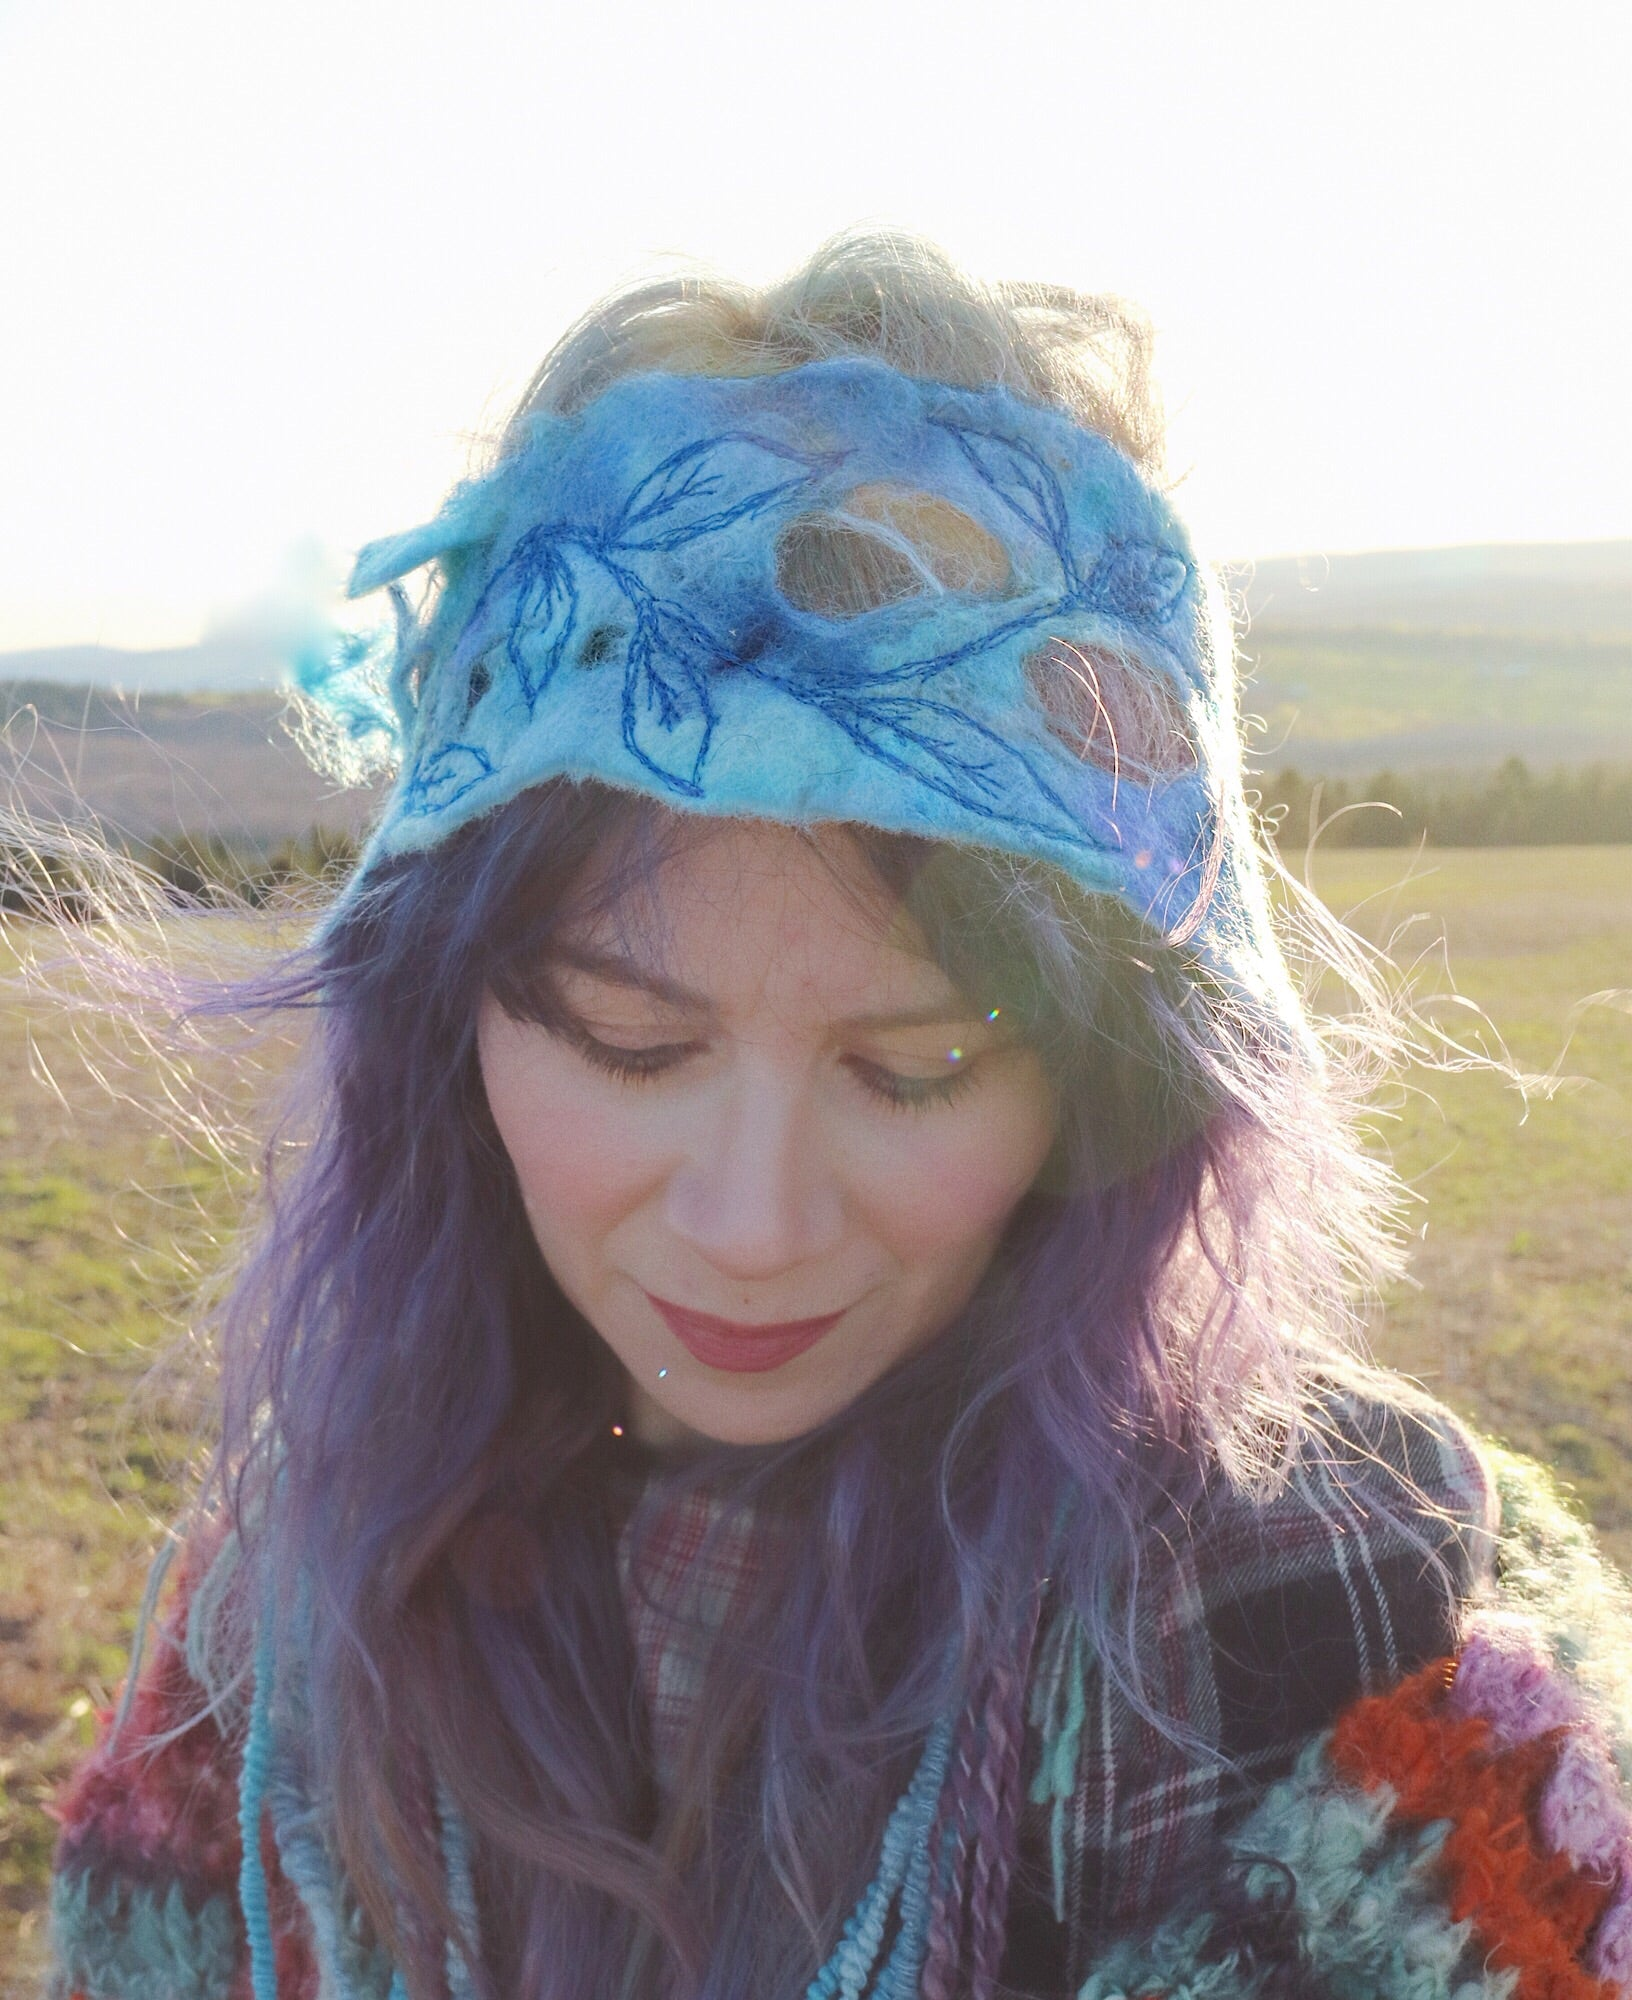 Blue felted headband with embroidery - Mynoush